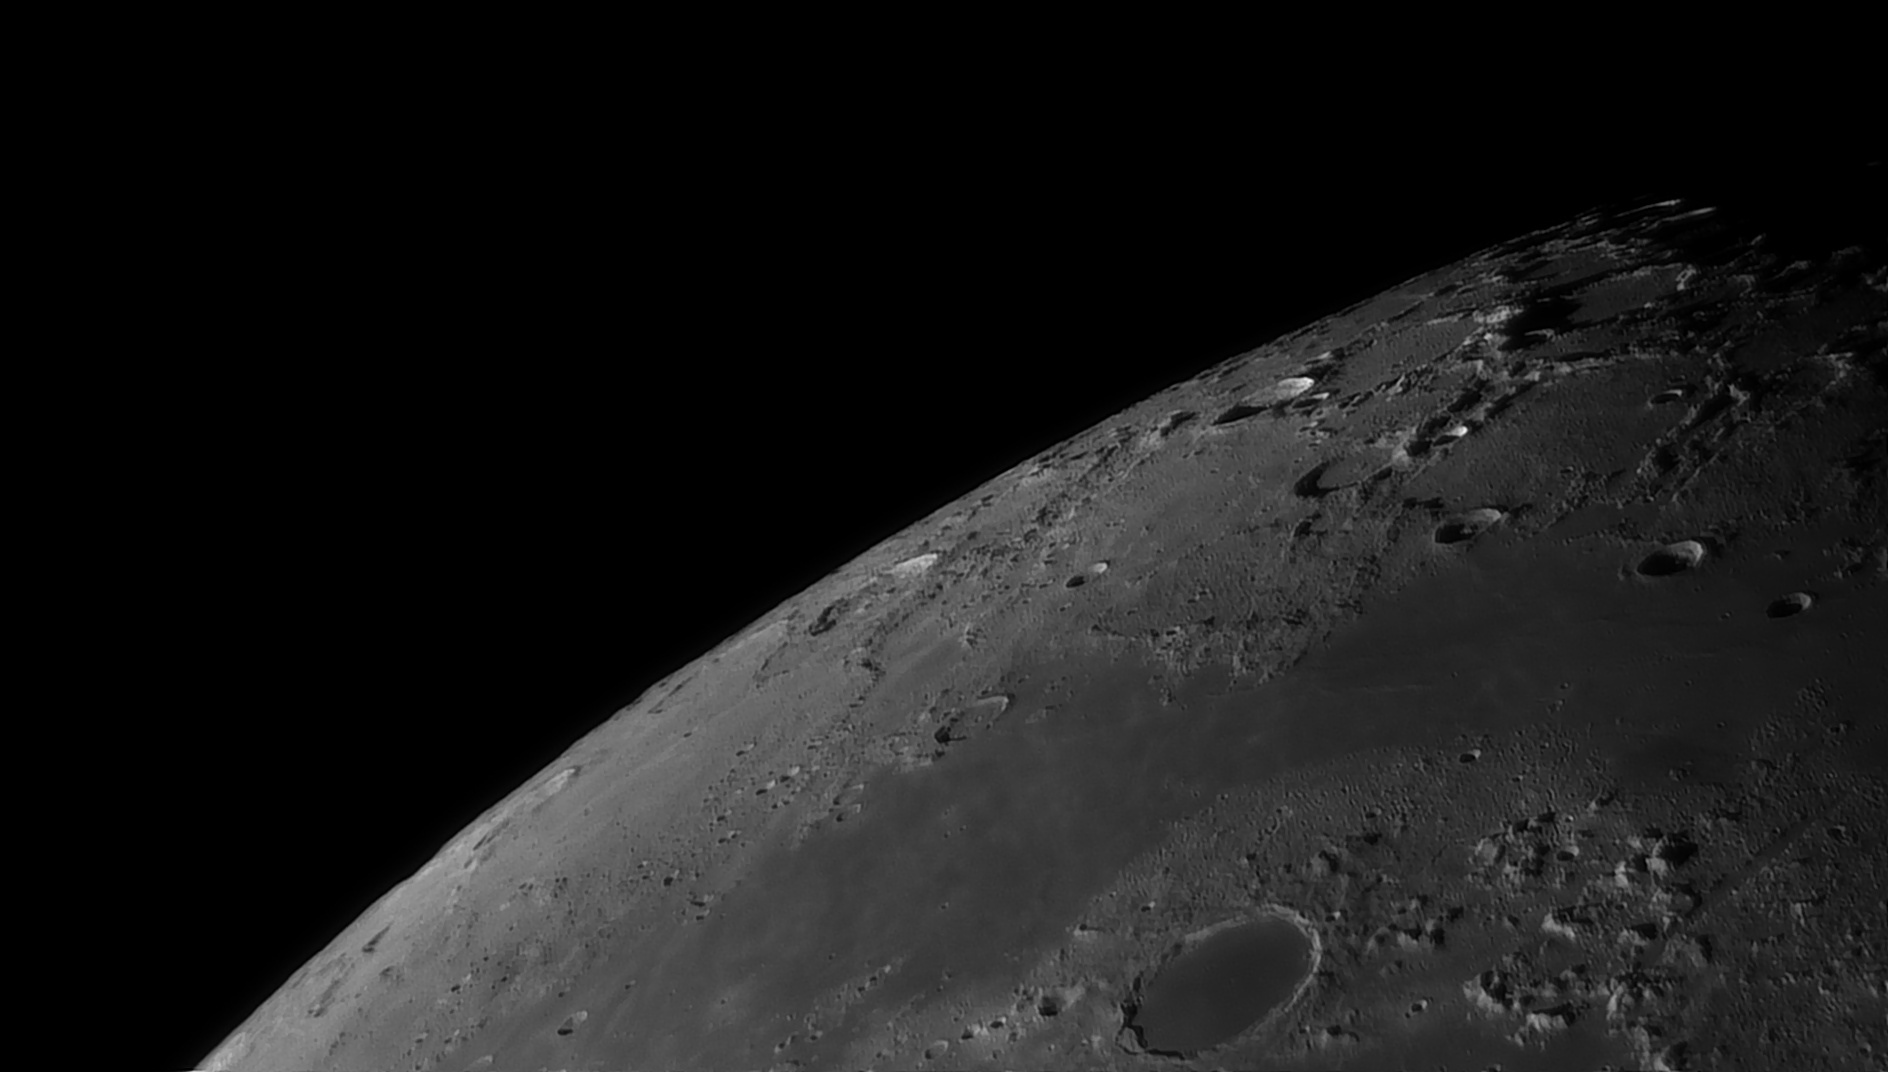 5e5194775aa36_Moon_055316_160120_ZWOASI290MM_Rouge_23A_AS_P35_lapl6_ap484_AI_Deconvolution_1--.jpg.164e1d0bba86b0f4d29c5c2fd4622ca2.jpg